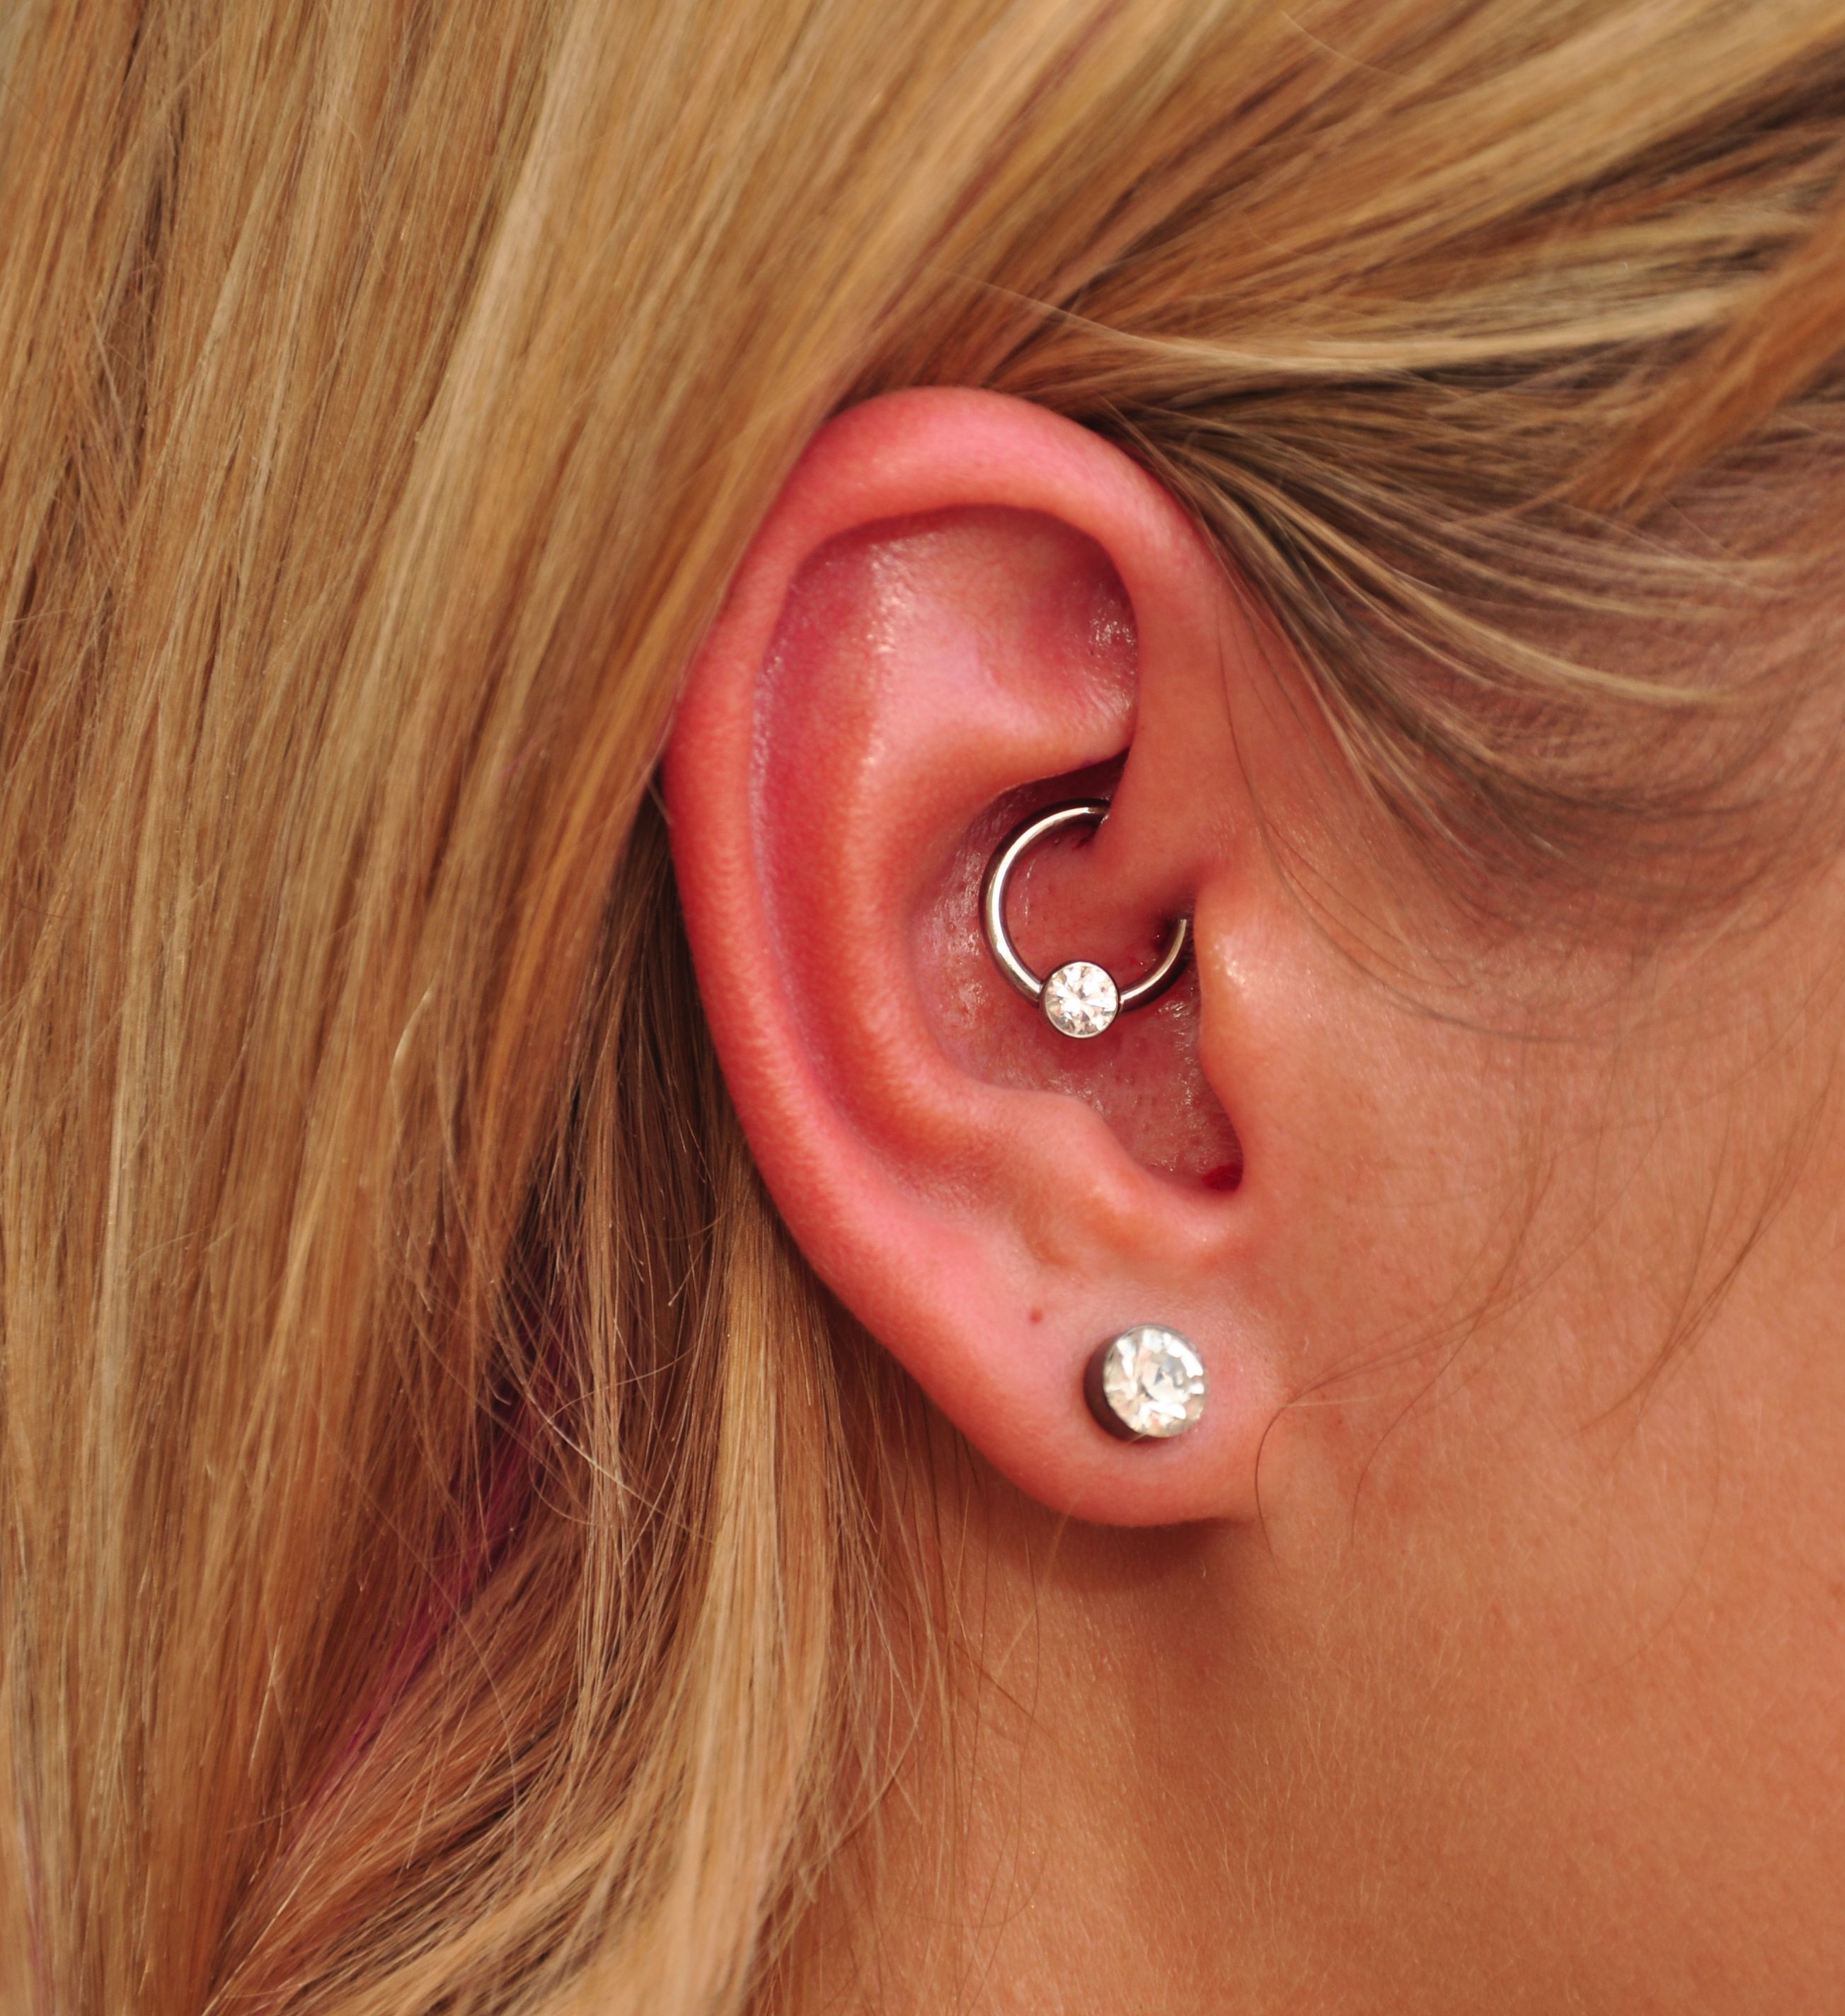 Piercing locations on body  fresh daith piercing with an Anatometal cbr and a bezel set CZ